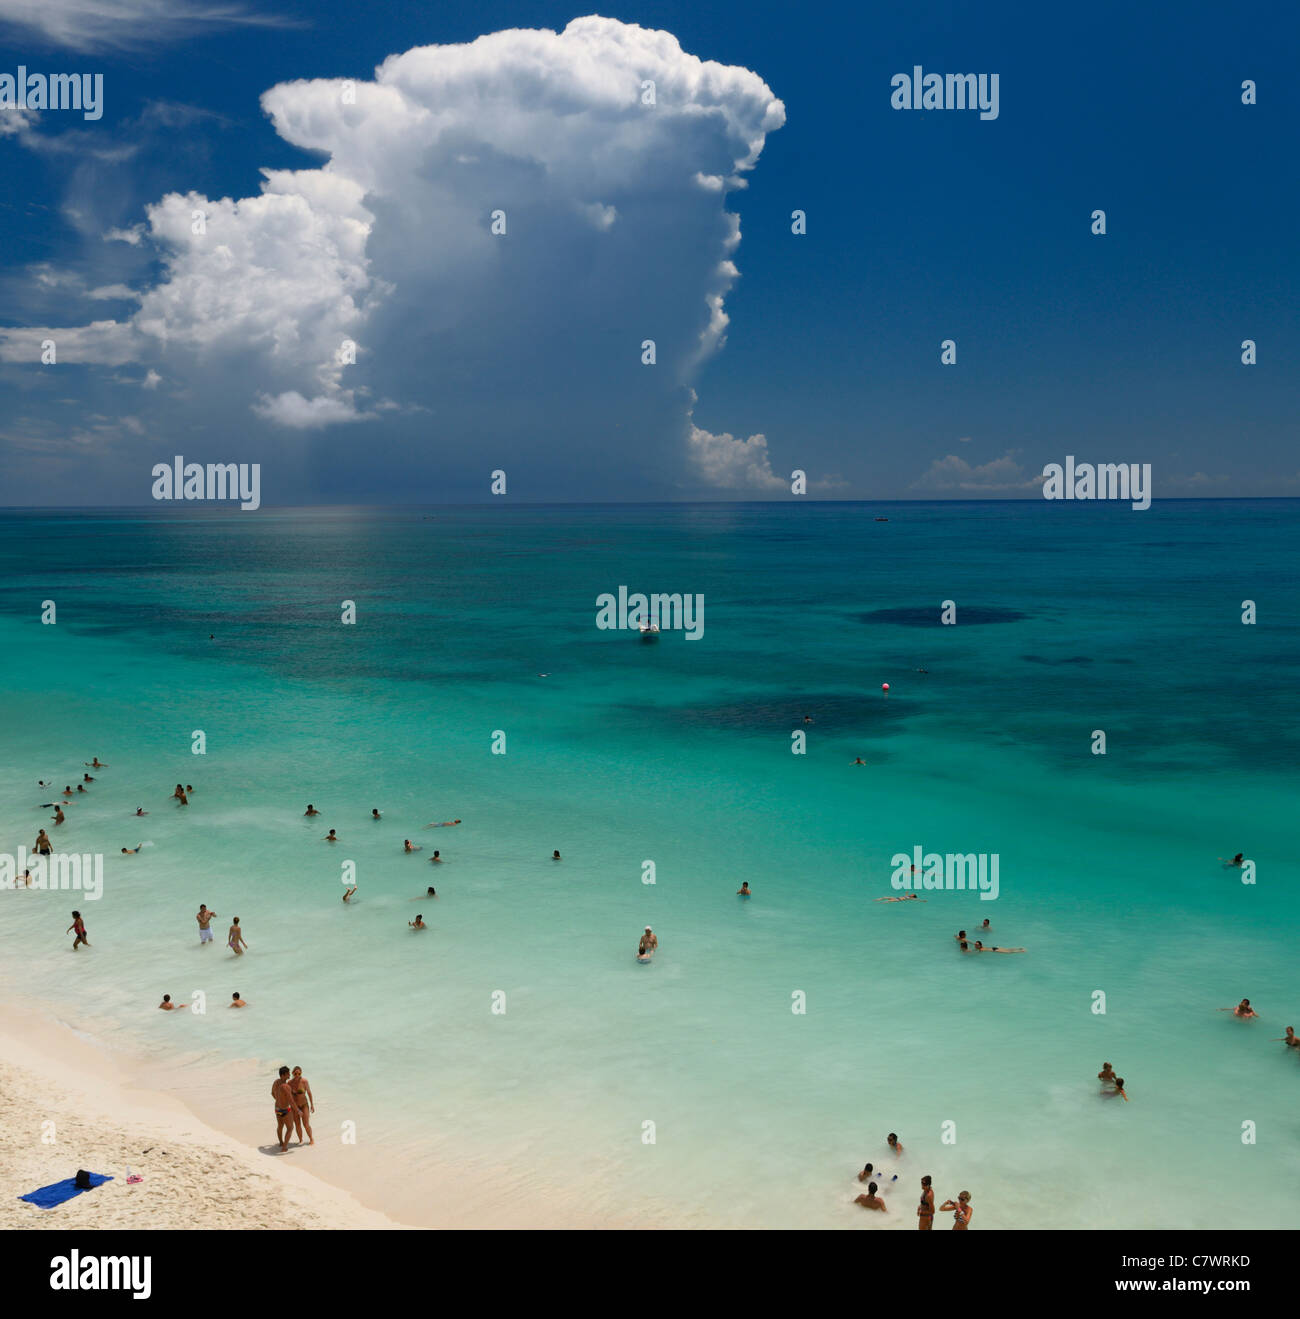 Crowd of bathers at Tulum beach Mexico in turquoise sea with storm cloud Mayan Riviera Yucatan Peninsula Caribbean - Stock Image